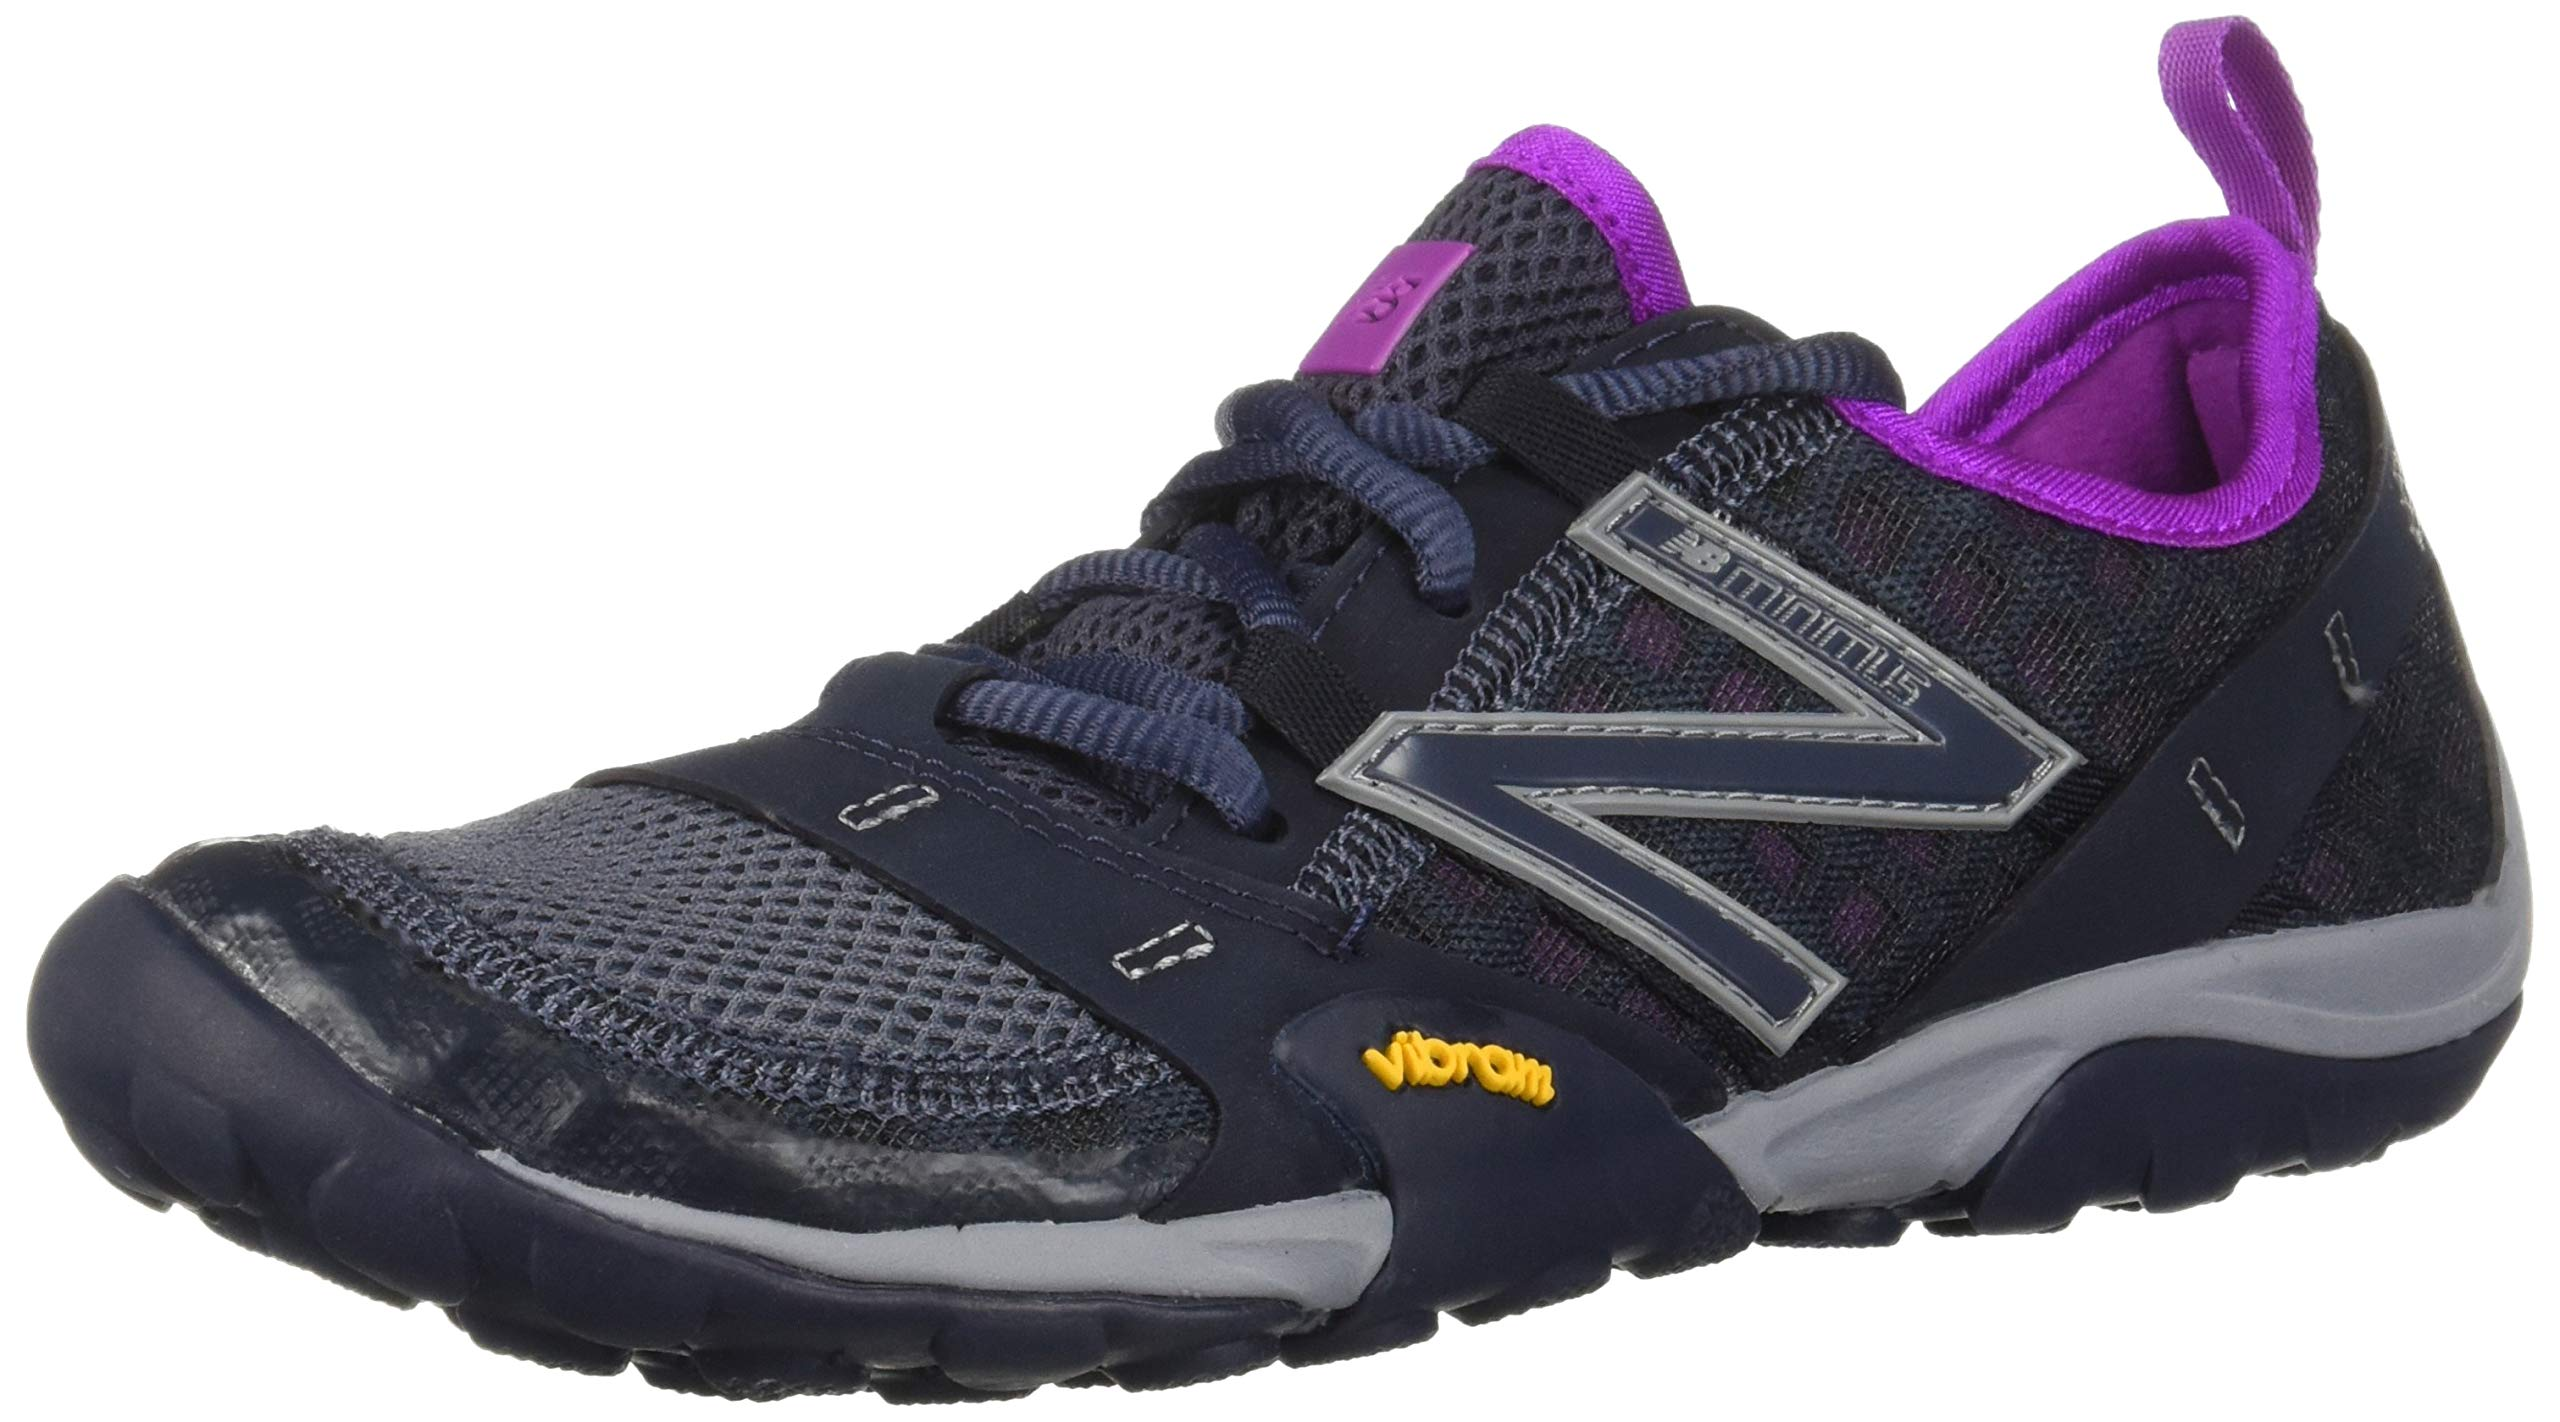 New Balance Women's 10v1 Minimus Trail Running Shoe, Outerspace/Voltage Violet, 10 D US by New Balance